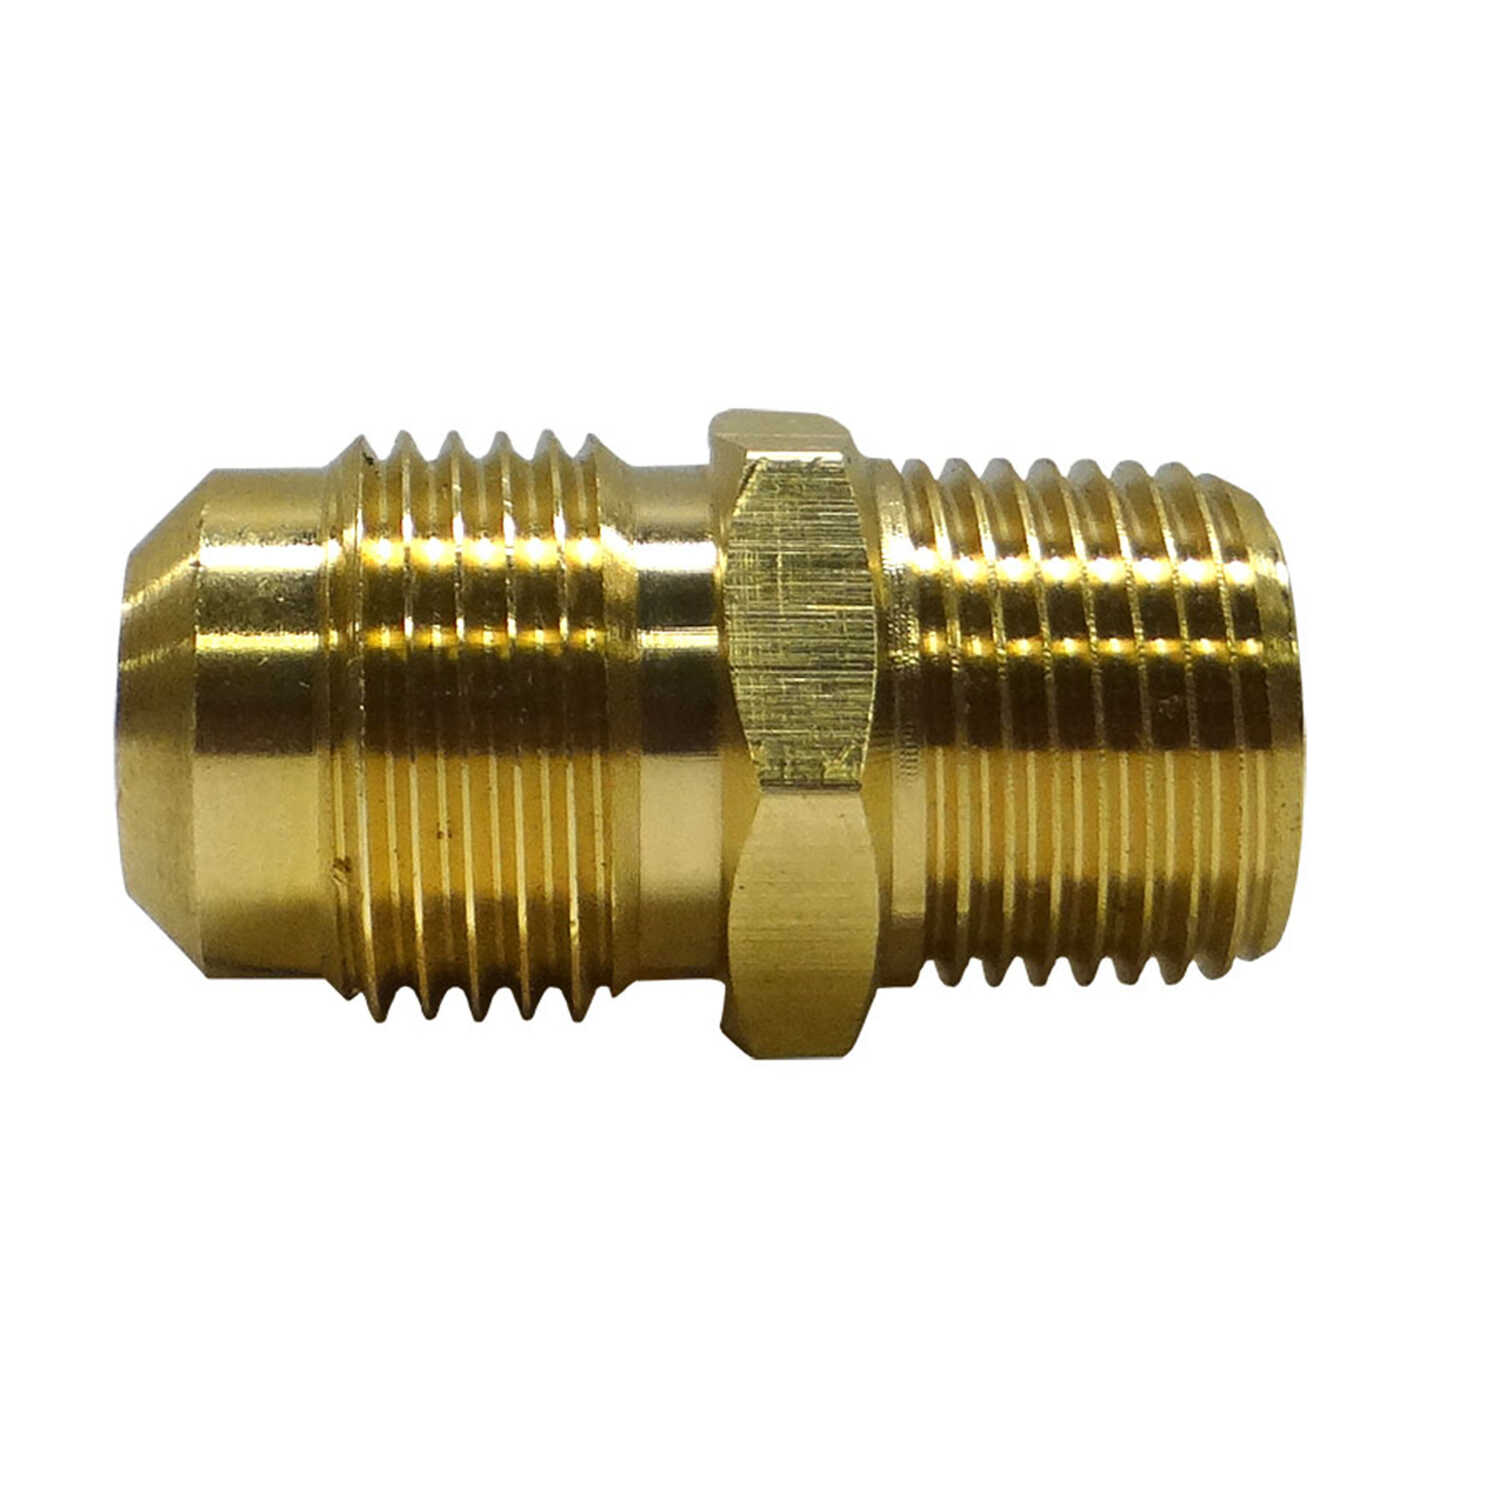 JMF  1/2 in. Flare   x 3/8 in. Dia. Male  Brass  Flare Adapter